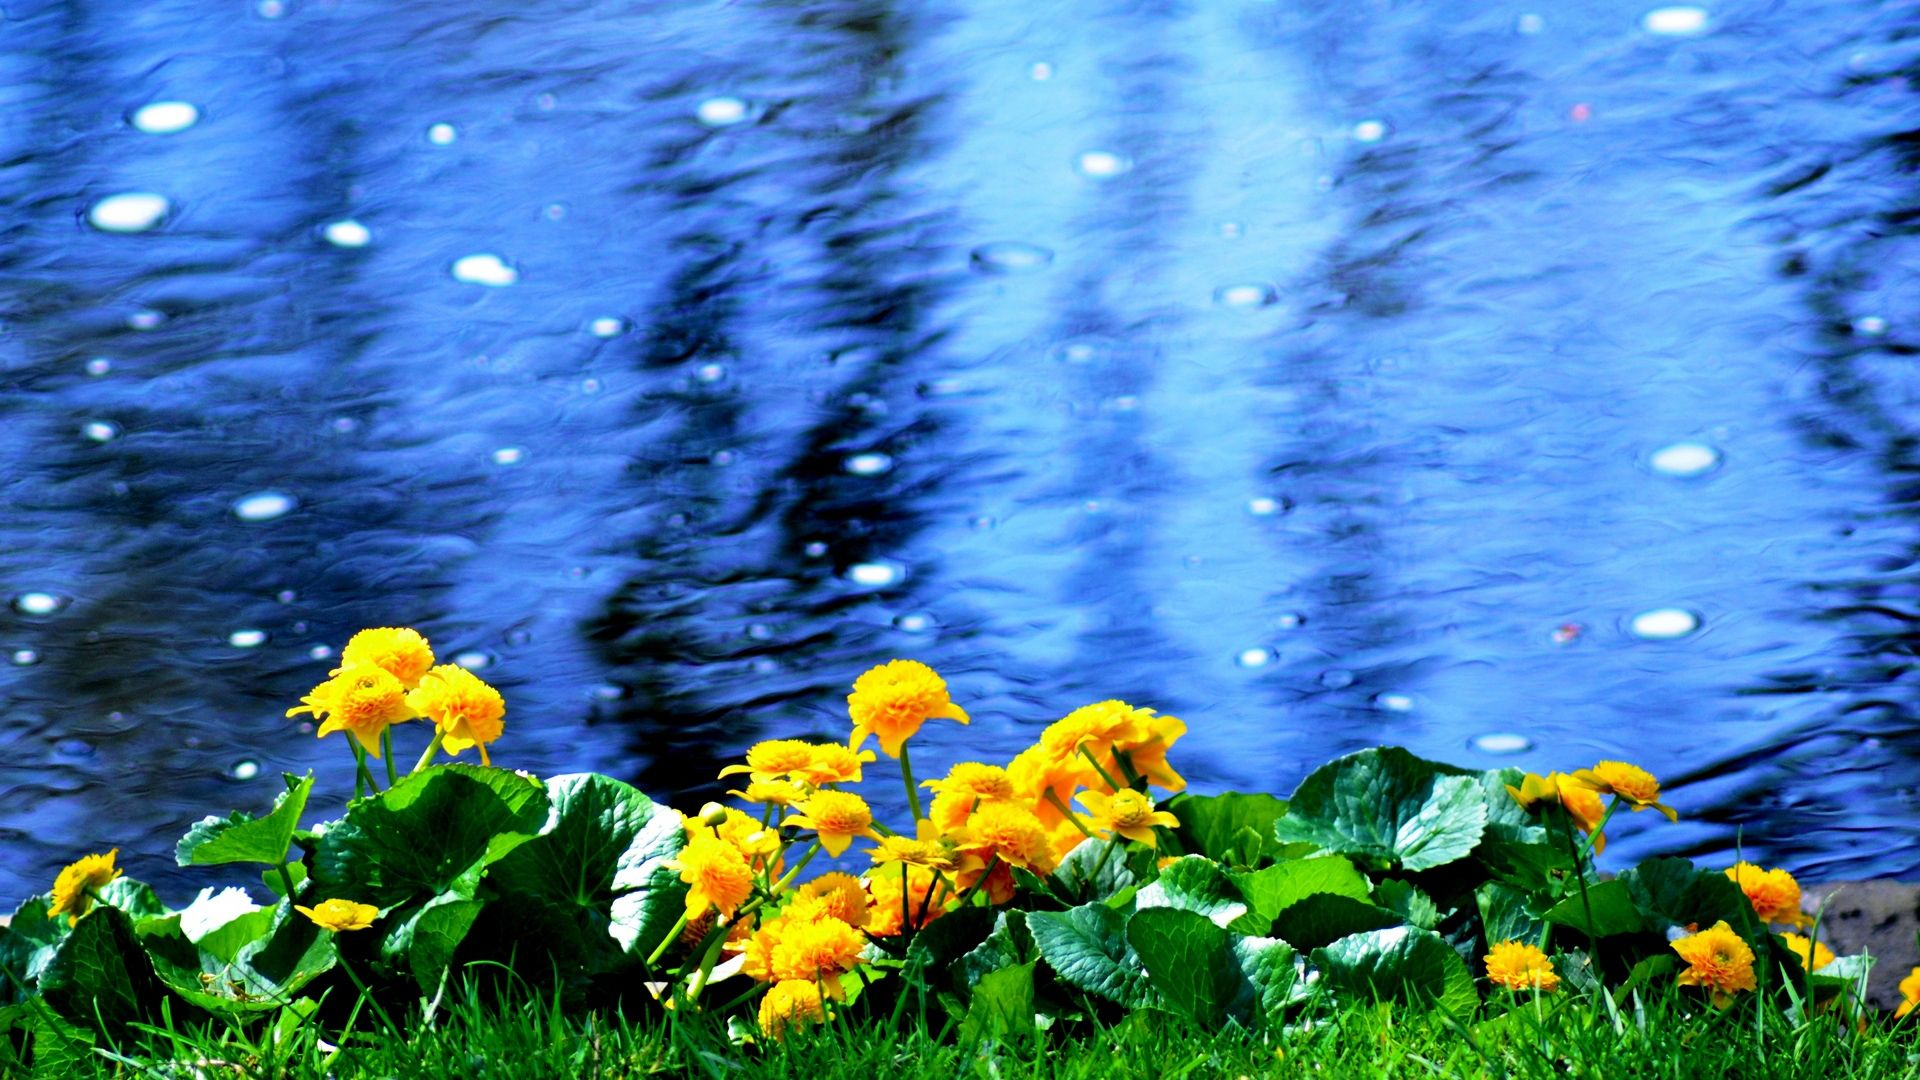 Wallpaper Flowers, Beach, Nature, Water HD, Picture, Image